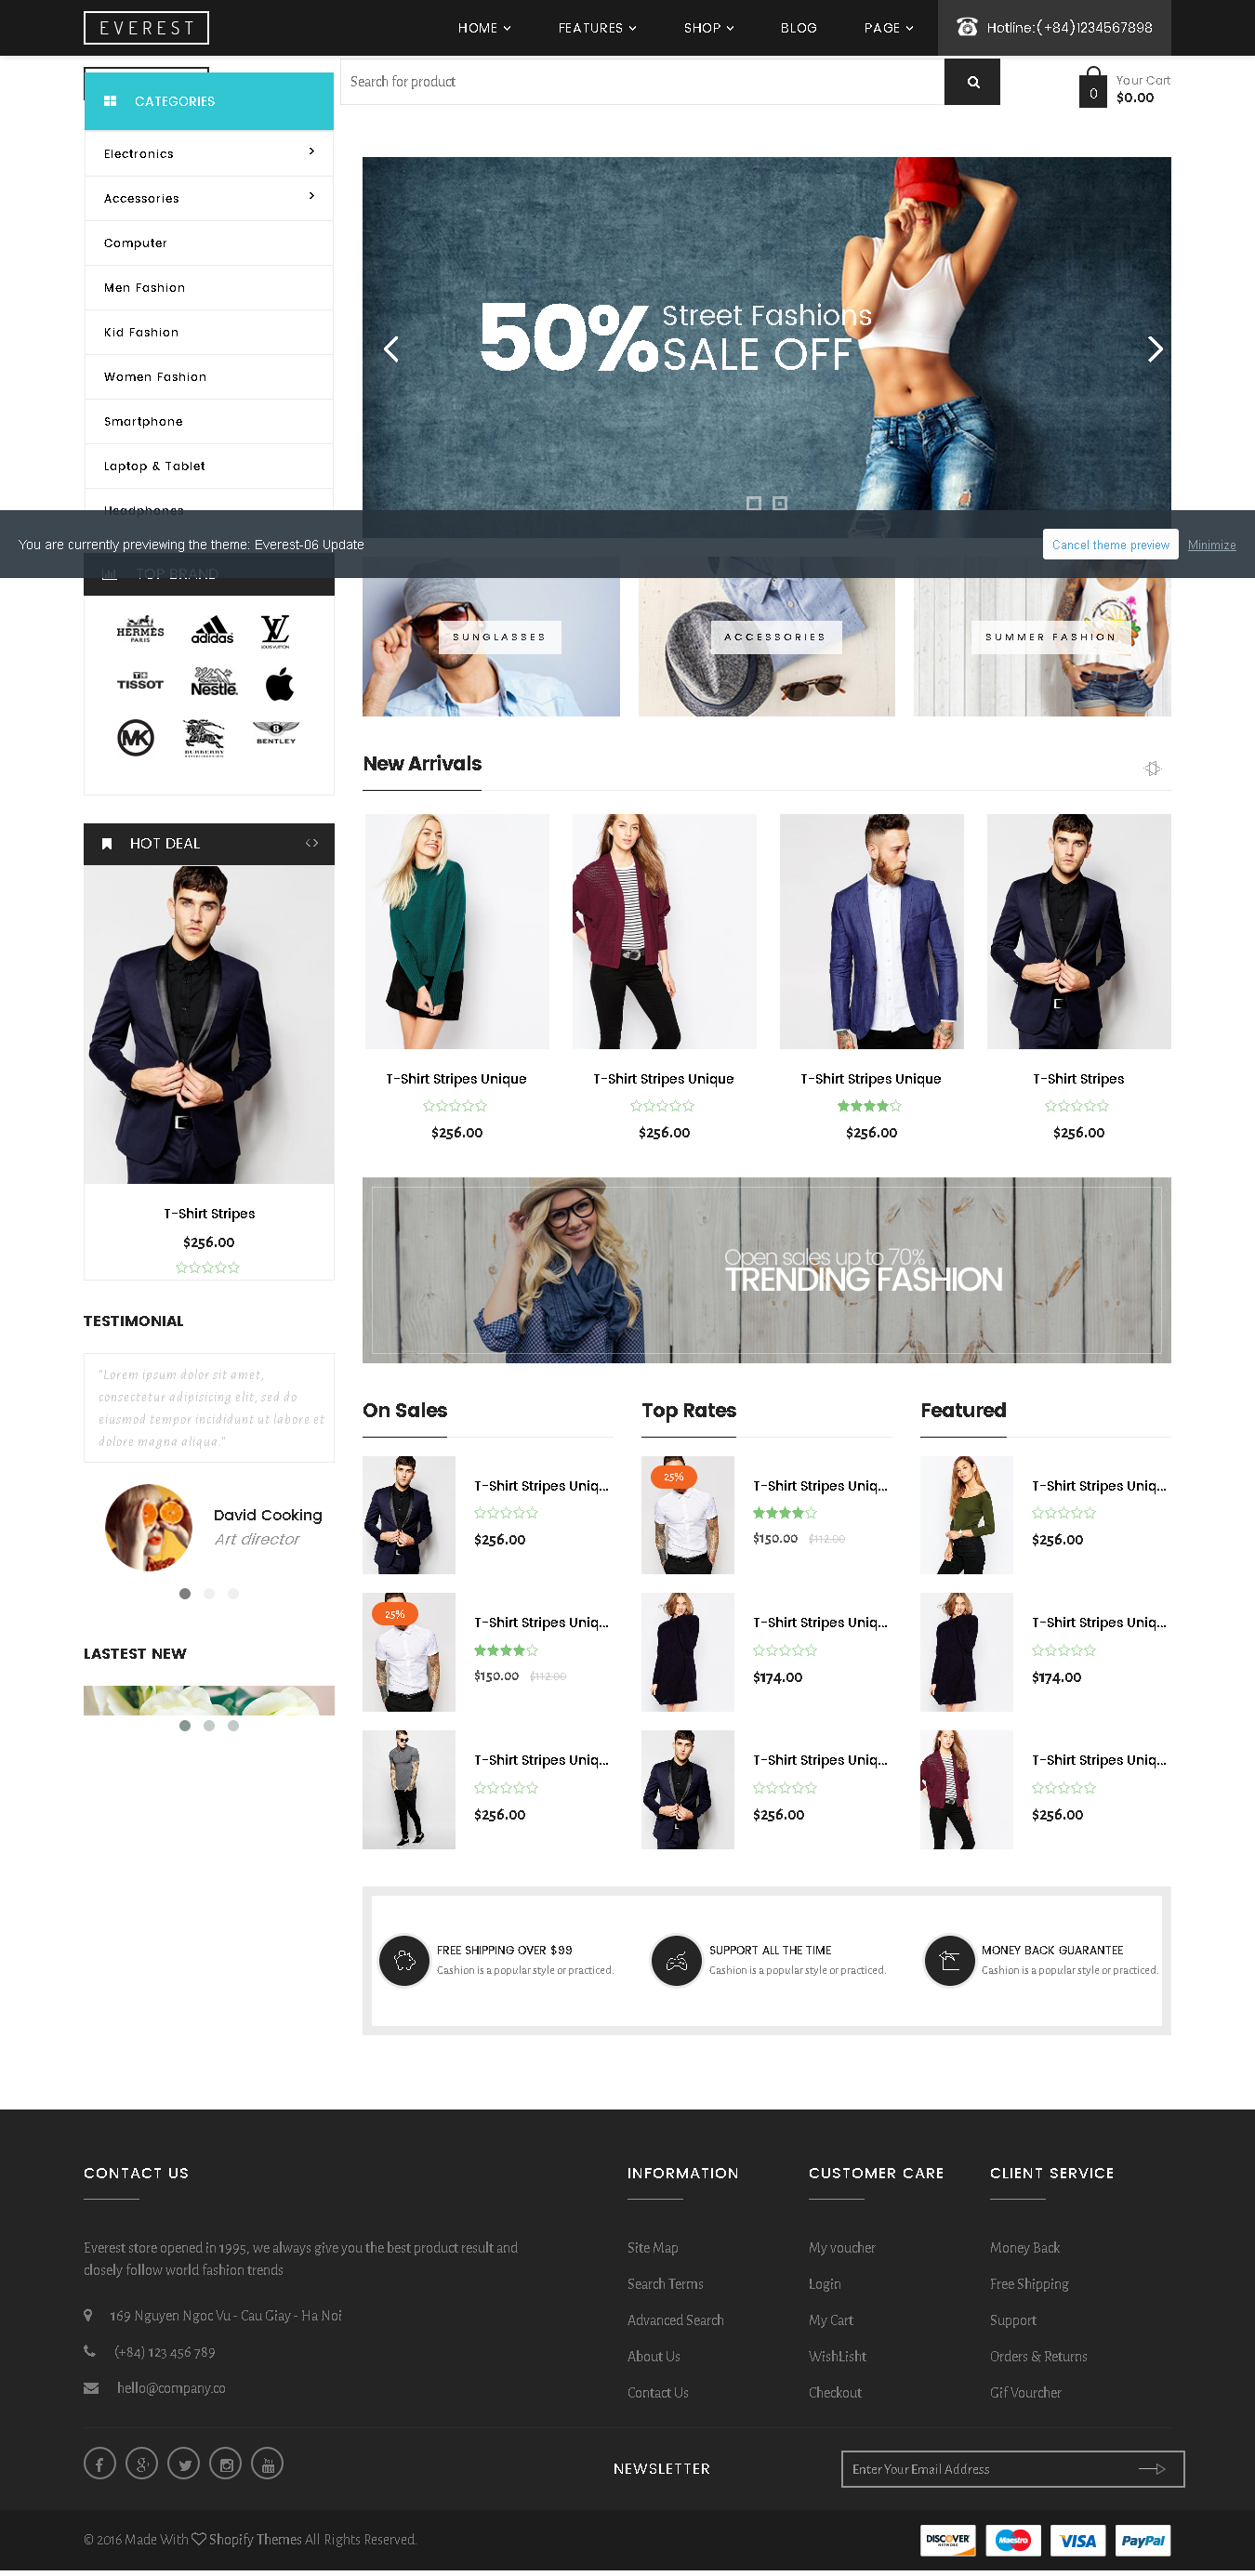 5 Best SHOPIFY Premium Themes Collection for Lingerie Store 2017 -Everest - Multipurpose Responsive Shopify Theme